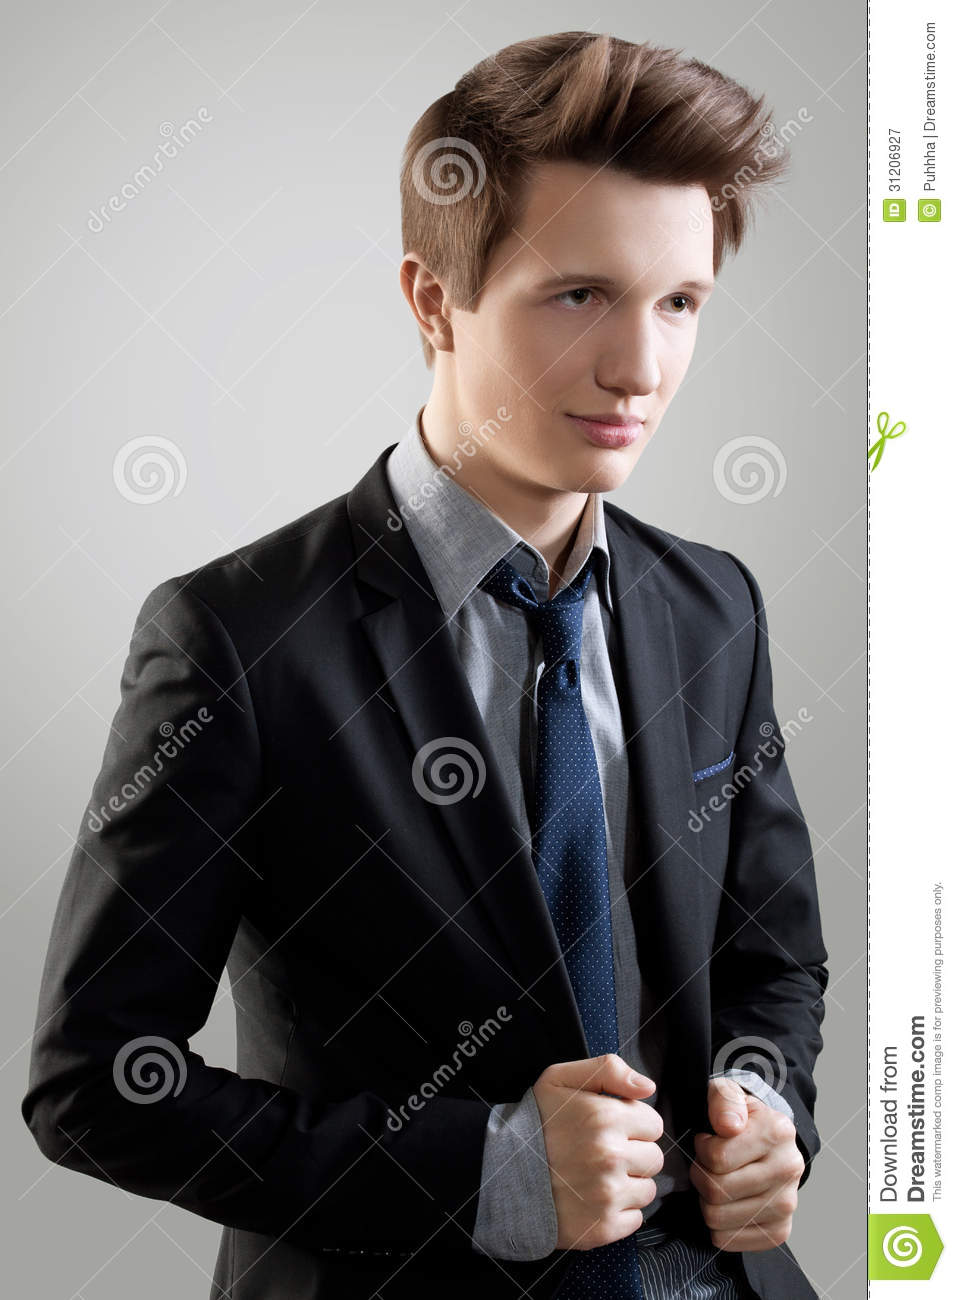 Short Hair Style Portrait Of Young Man With Brown Hair Stock Image